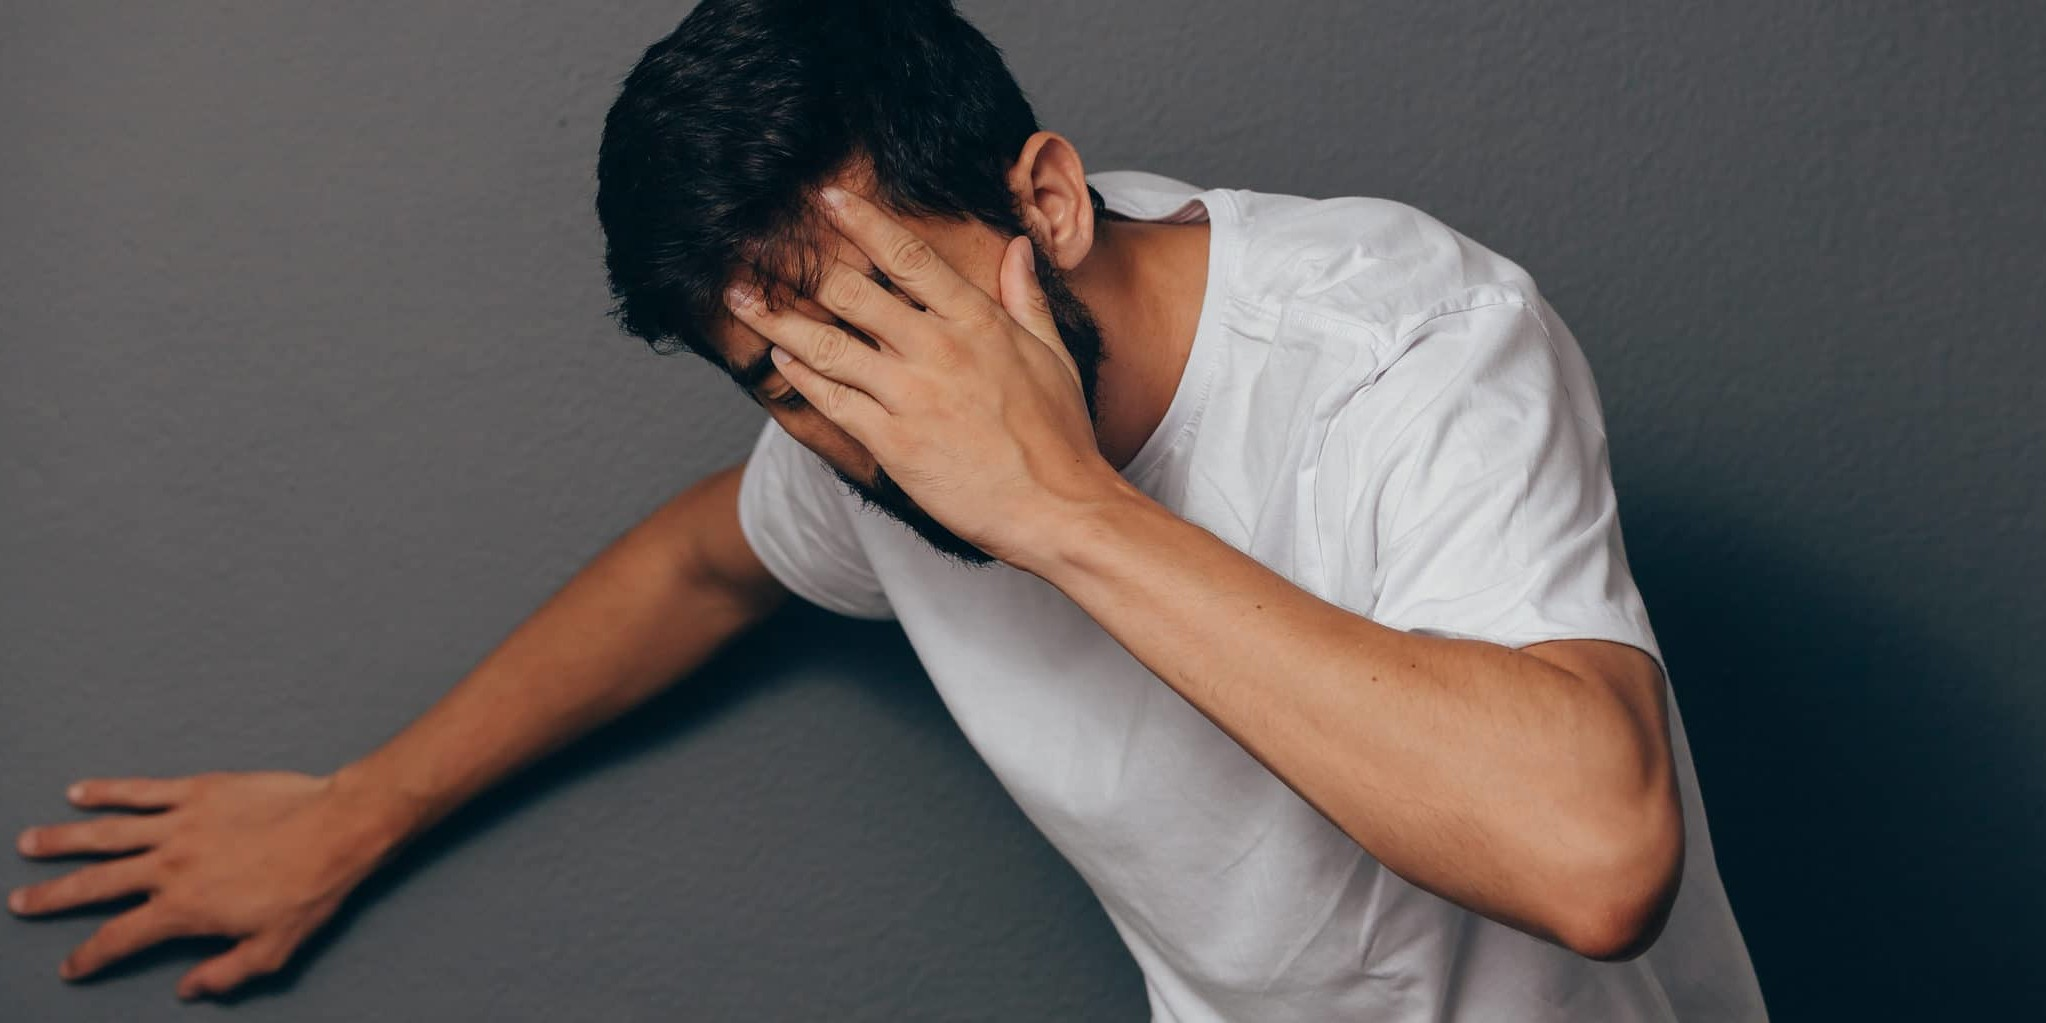 Man suffering from dizziness with difficulty standing up while leaning on wall. BPPV concept